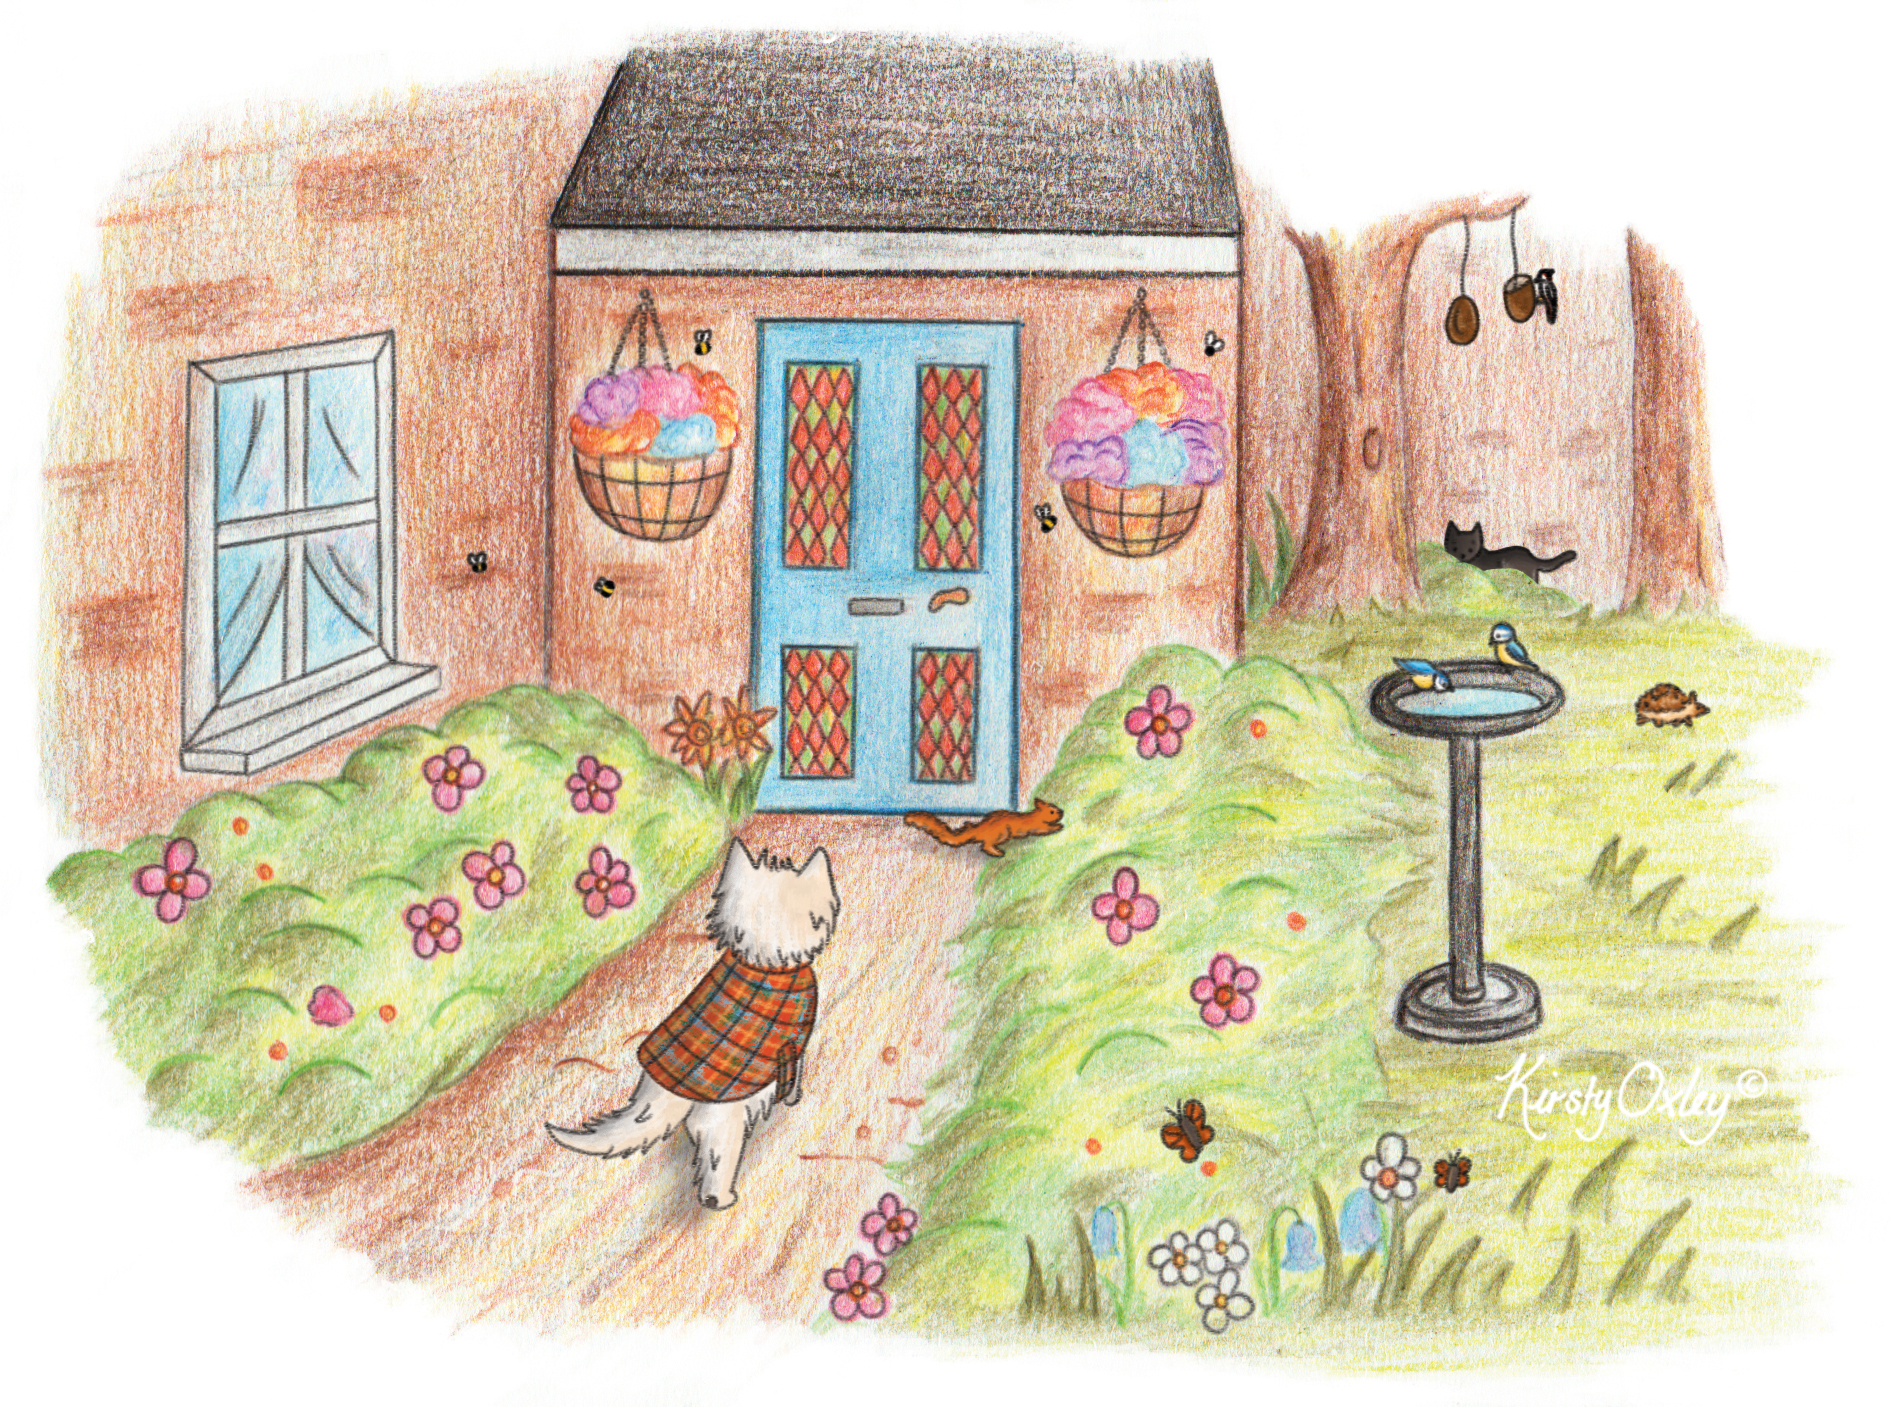 Corries_Capers_Tattoo_Toorie_Bluebell_Cottage_Kirsty_Oxley_Illustration_2.jpg